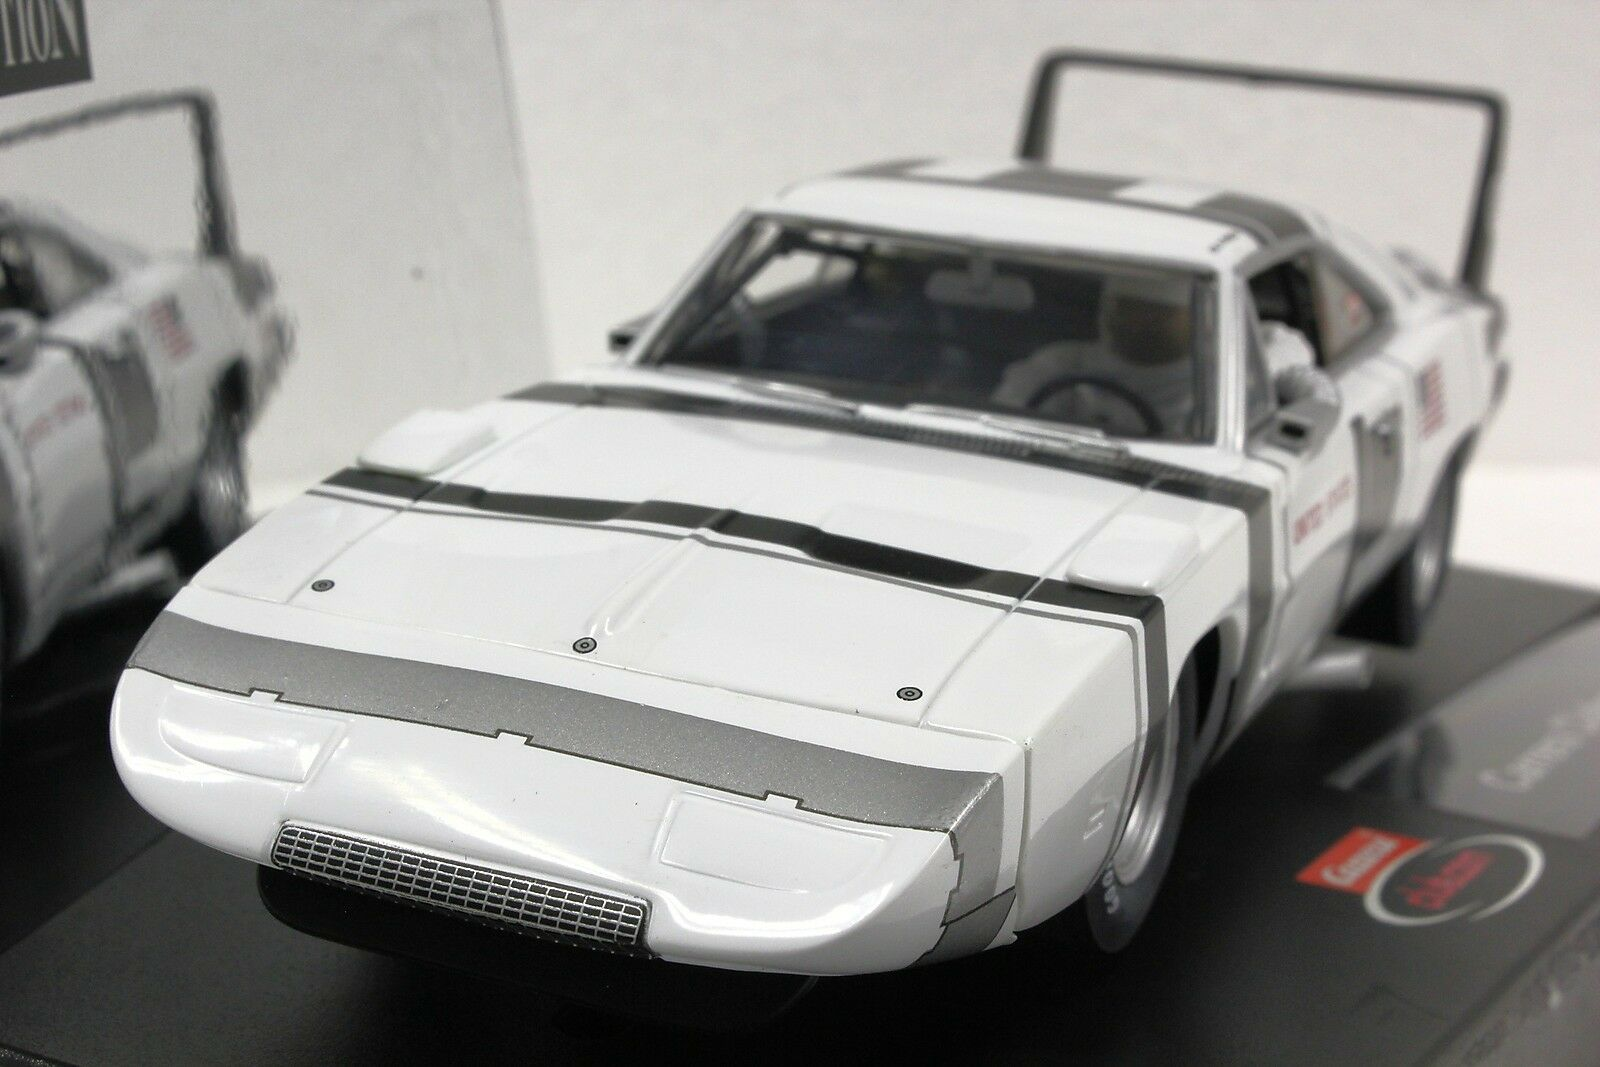 CARRERA 25790 DODGE DAYTONA CHARGER 70' NASA CLUB CAR EVOLUTION 1 32 SLOT CAR